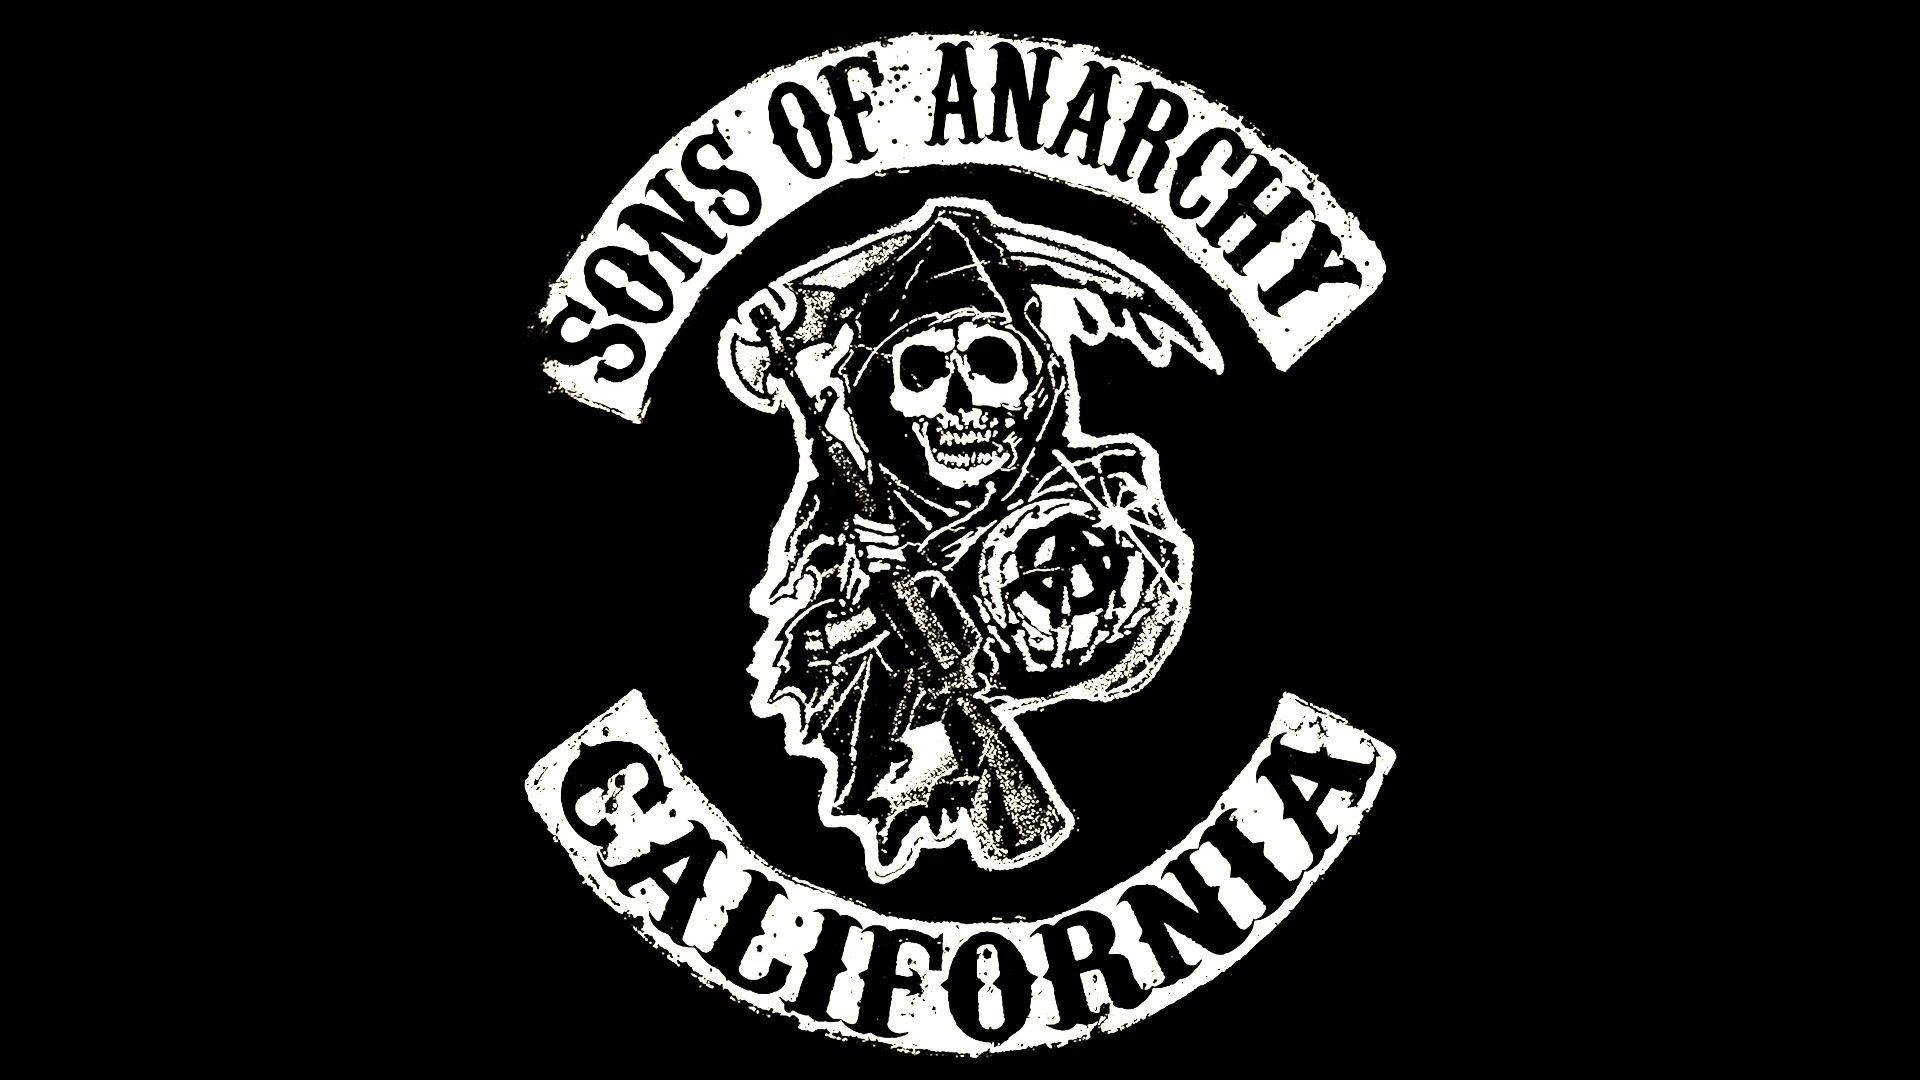 [Manual Sons of Anarchy]  7b391bf0e45b6b60138b5effc42abf21